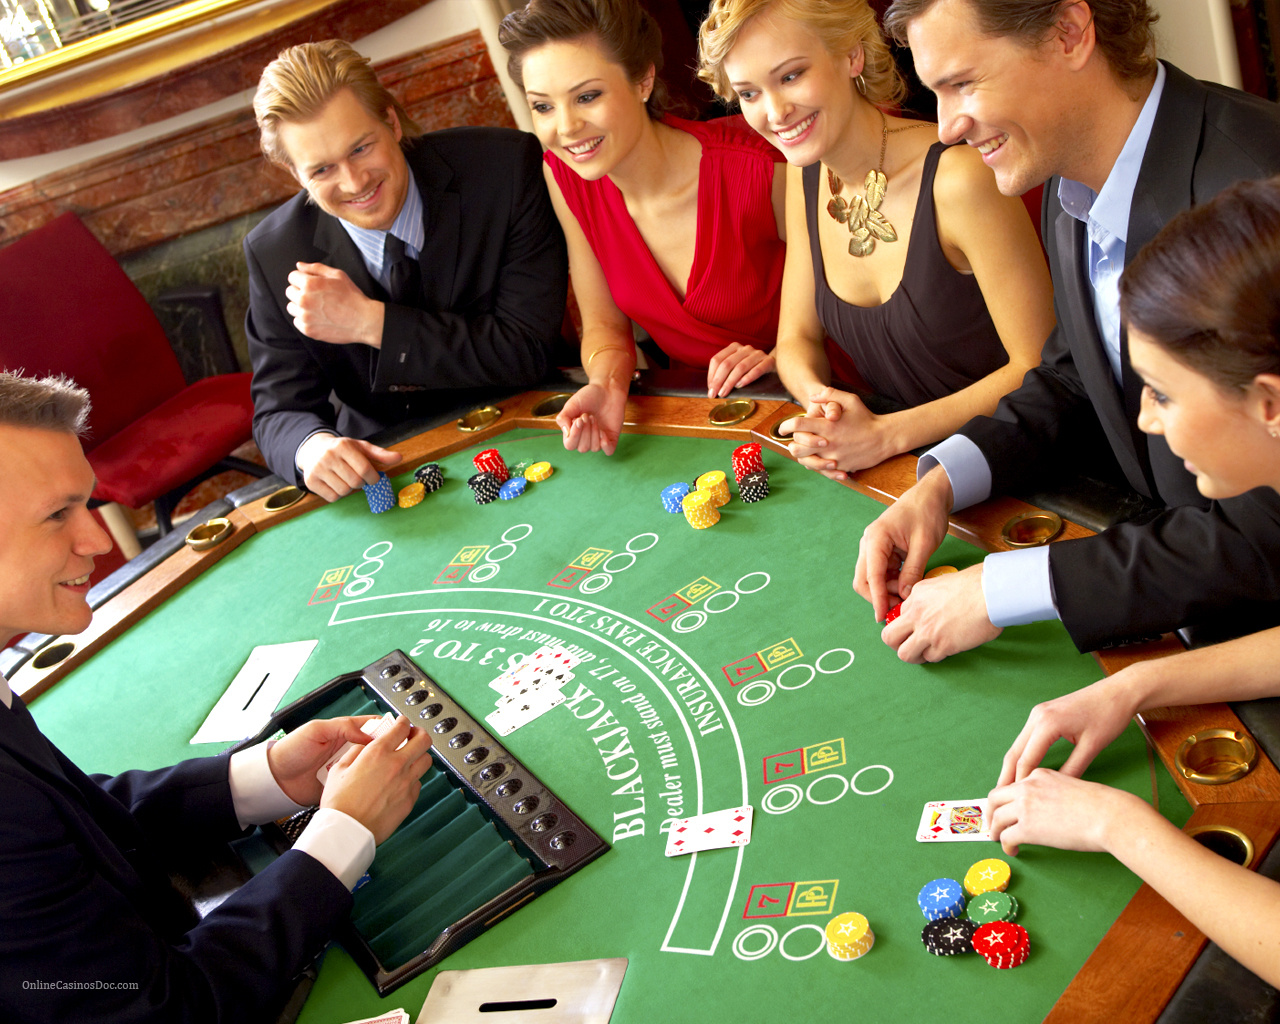 Play Casino Video Games With Stay Sellers Out Of Your Desktop - Gaming